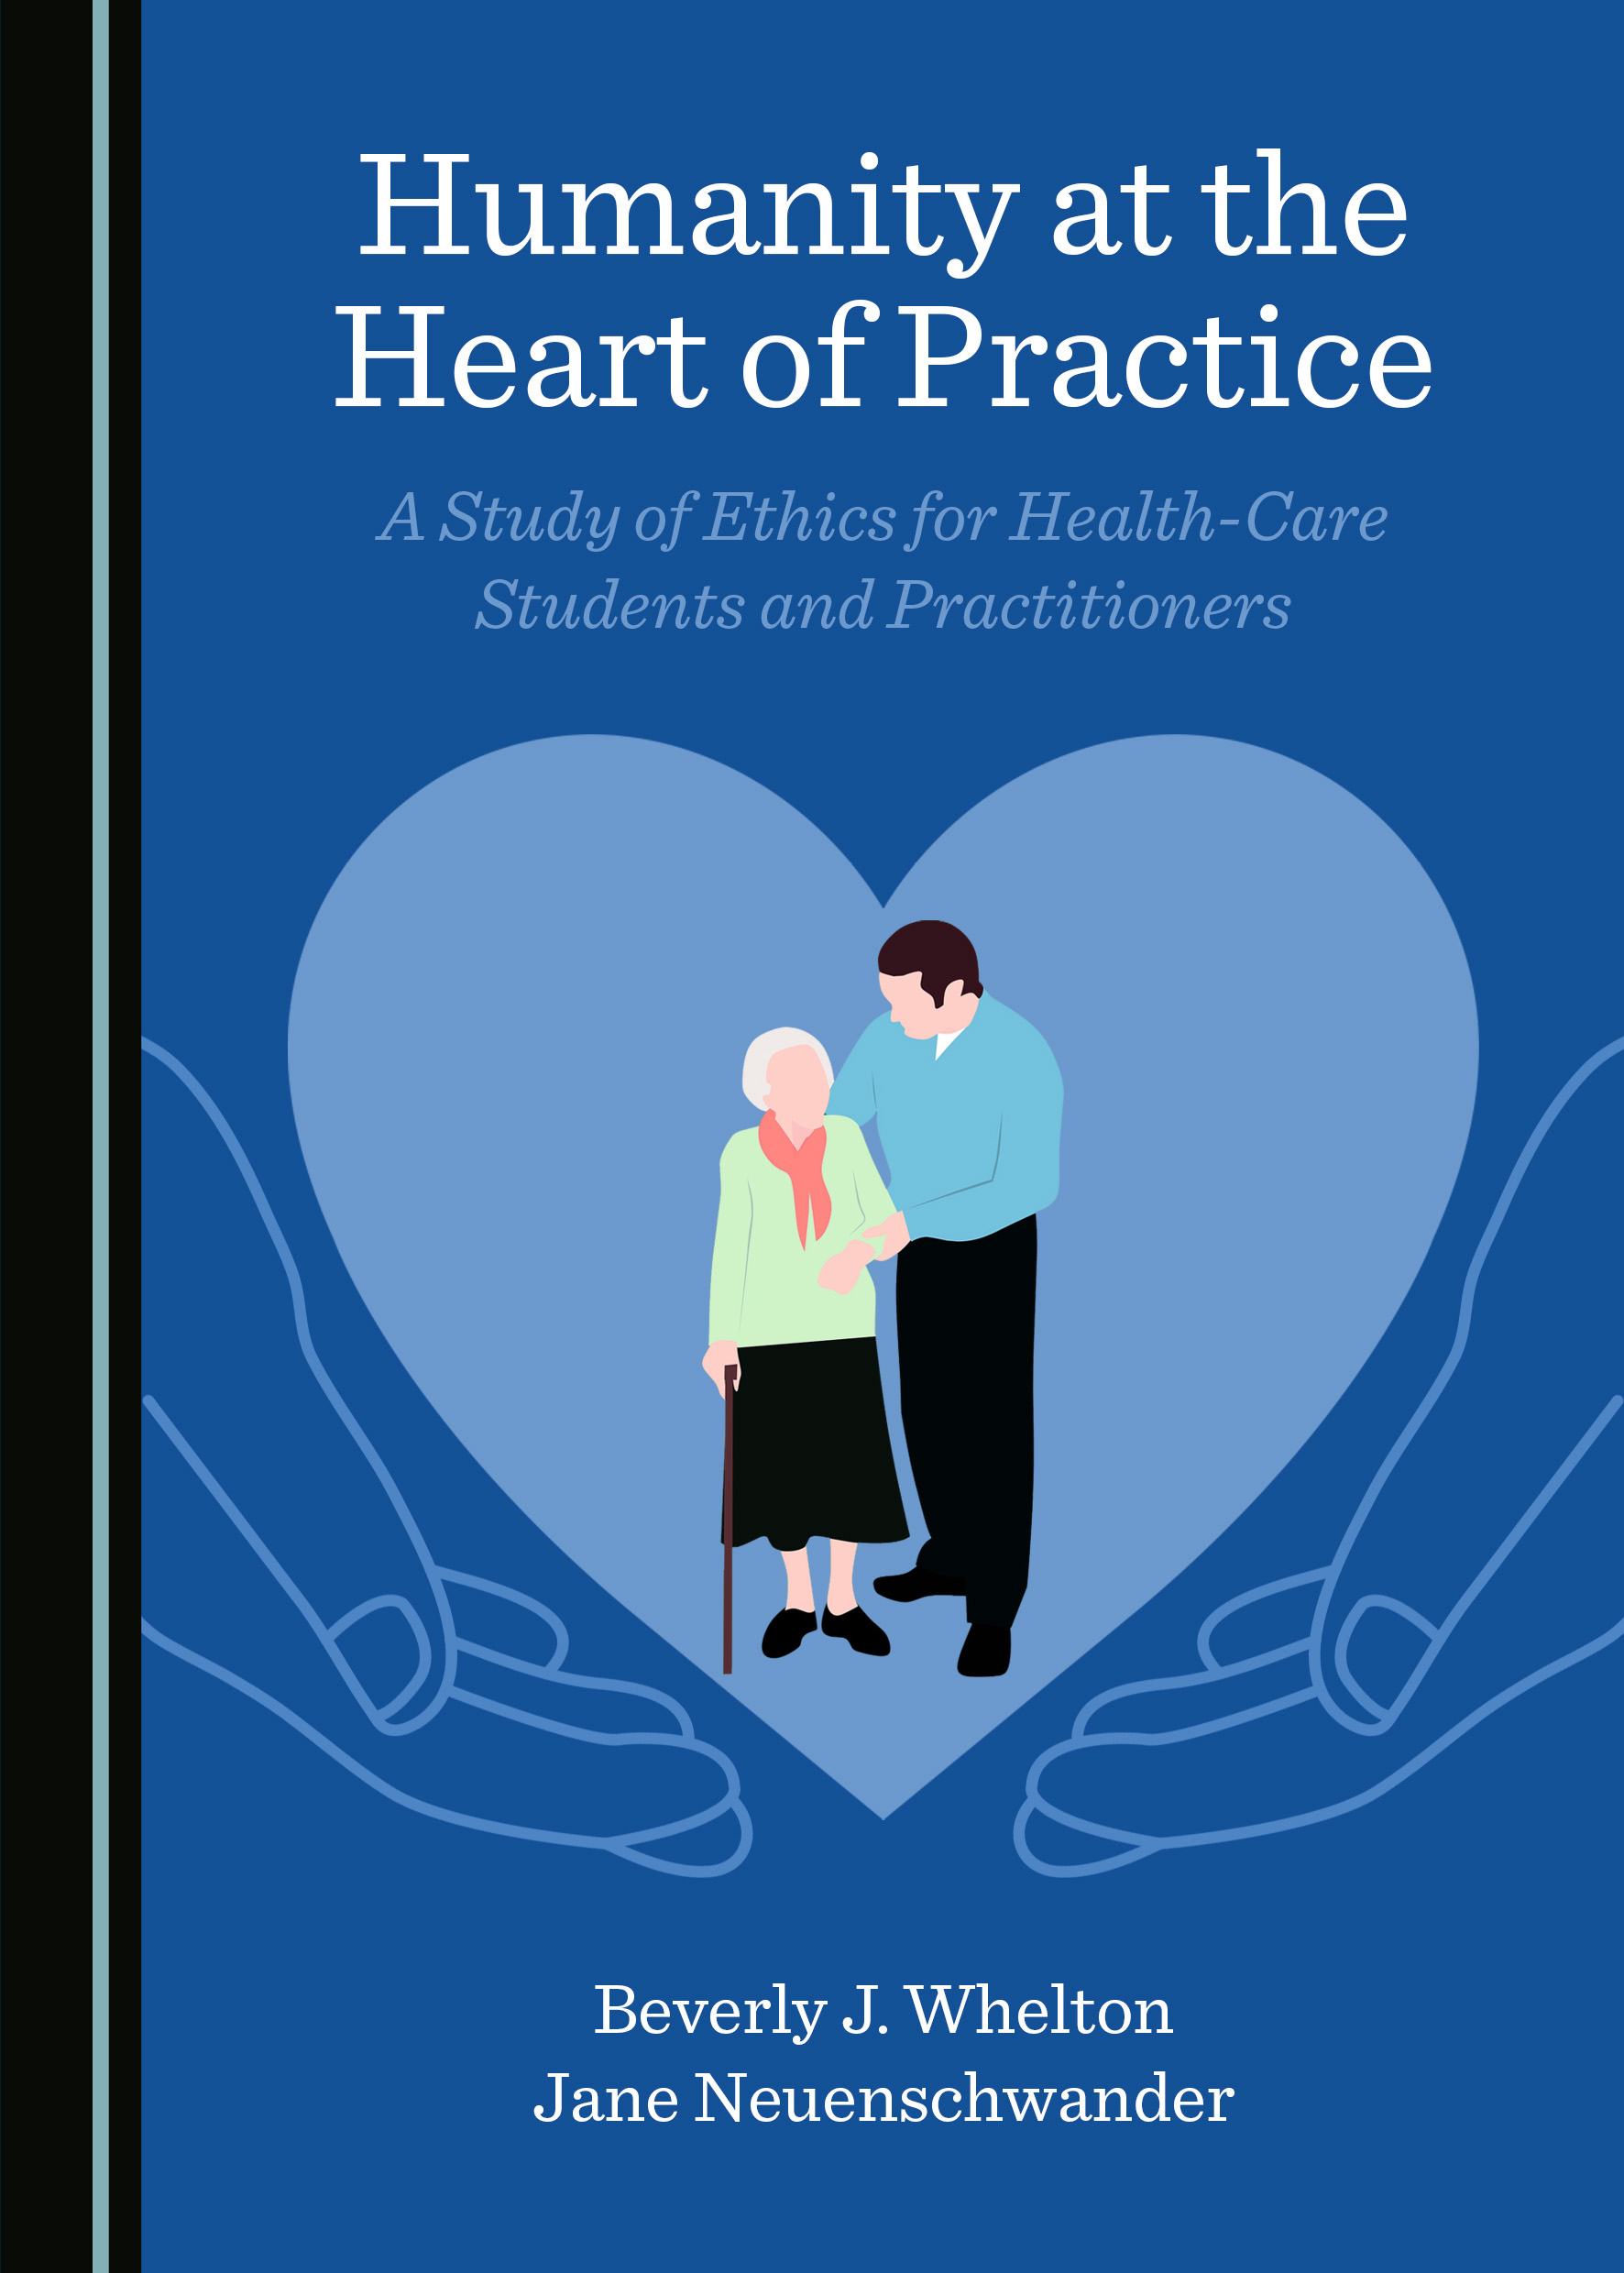 Humanity at the Heart of Practice: A Study of Ethics for Health-Care Students and Practitioners